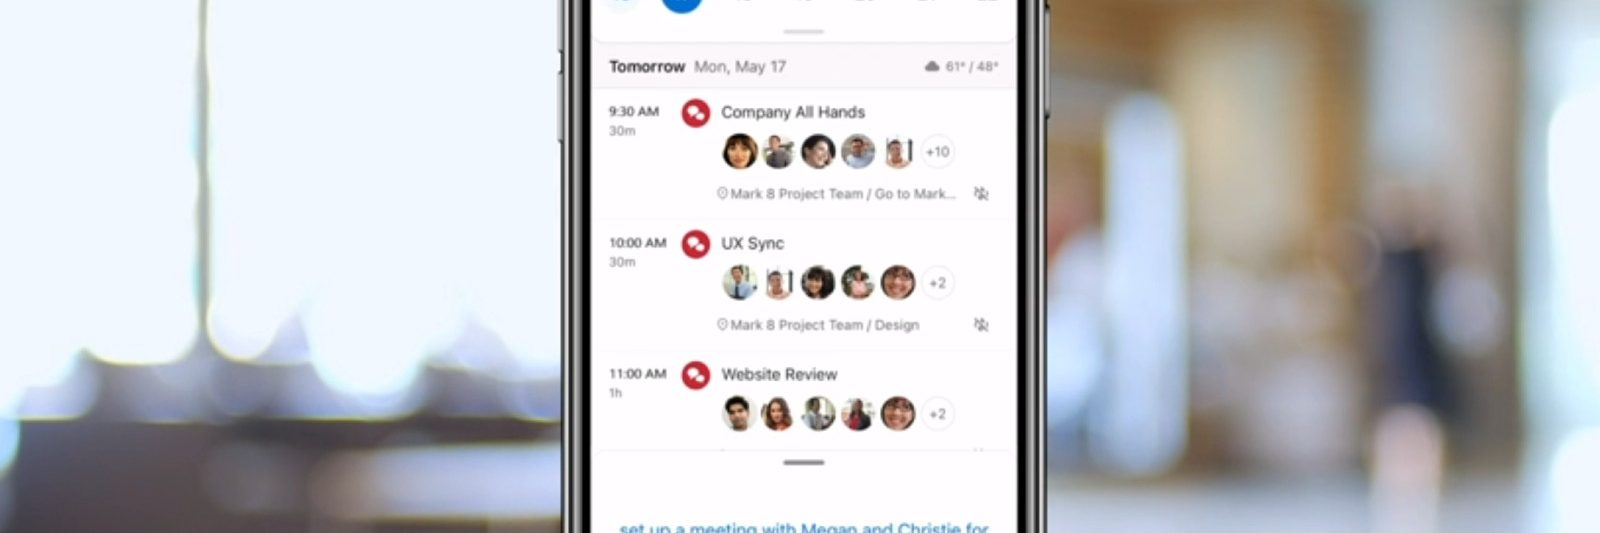 https://alltech.news/data/2021/06/Microsoft-Outlook-on-iOS-adds-voice-dictation-for-emails-search-1600x533.jpeg